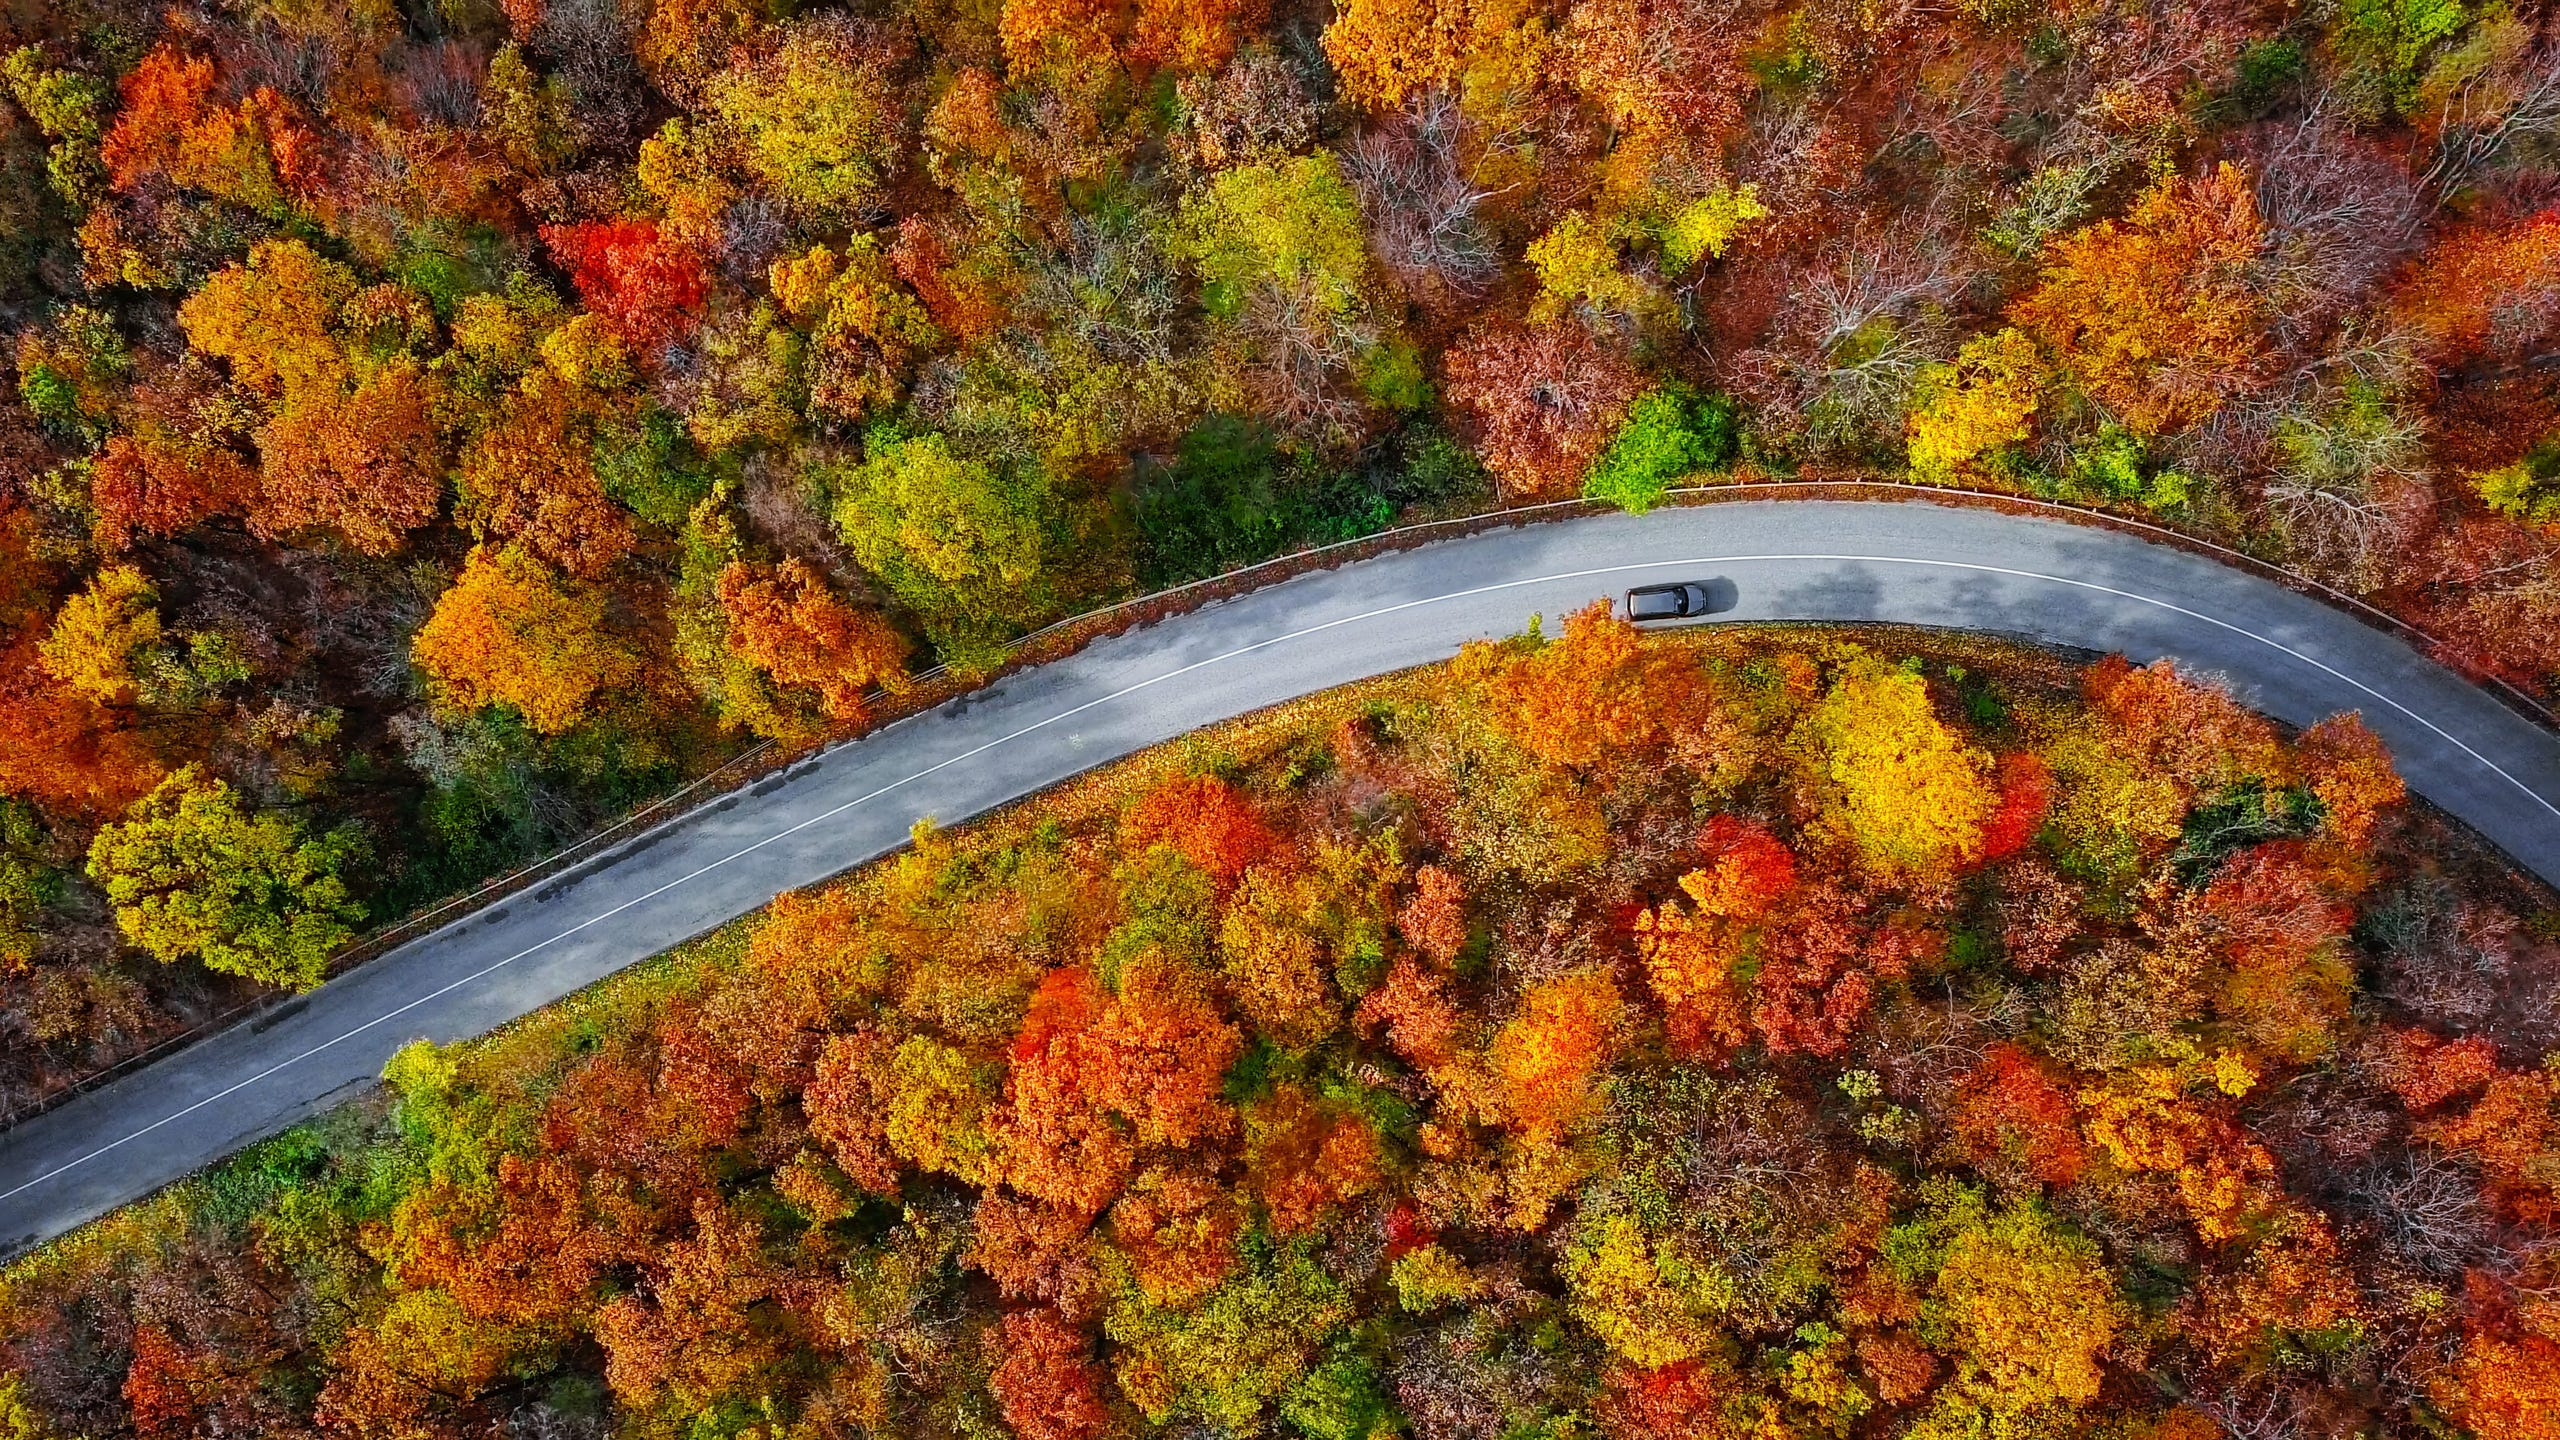 Fall leaves: Best places to enjoy foliage, according to readers